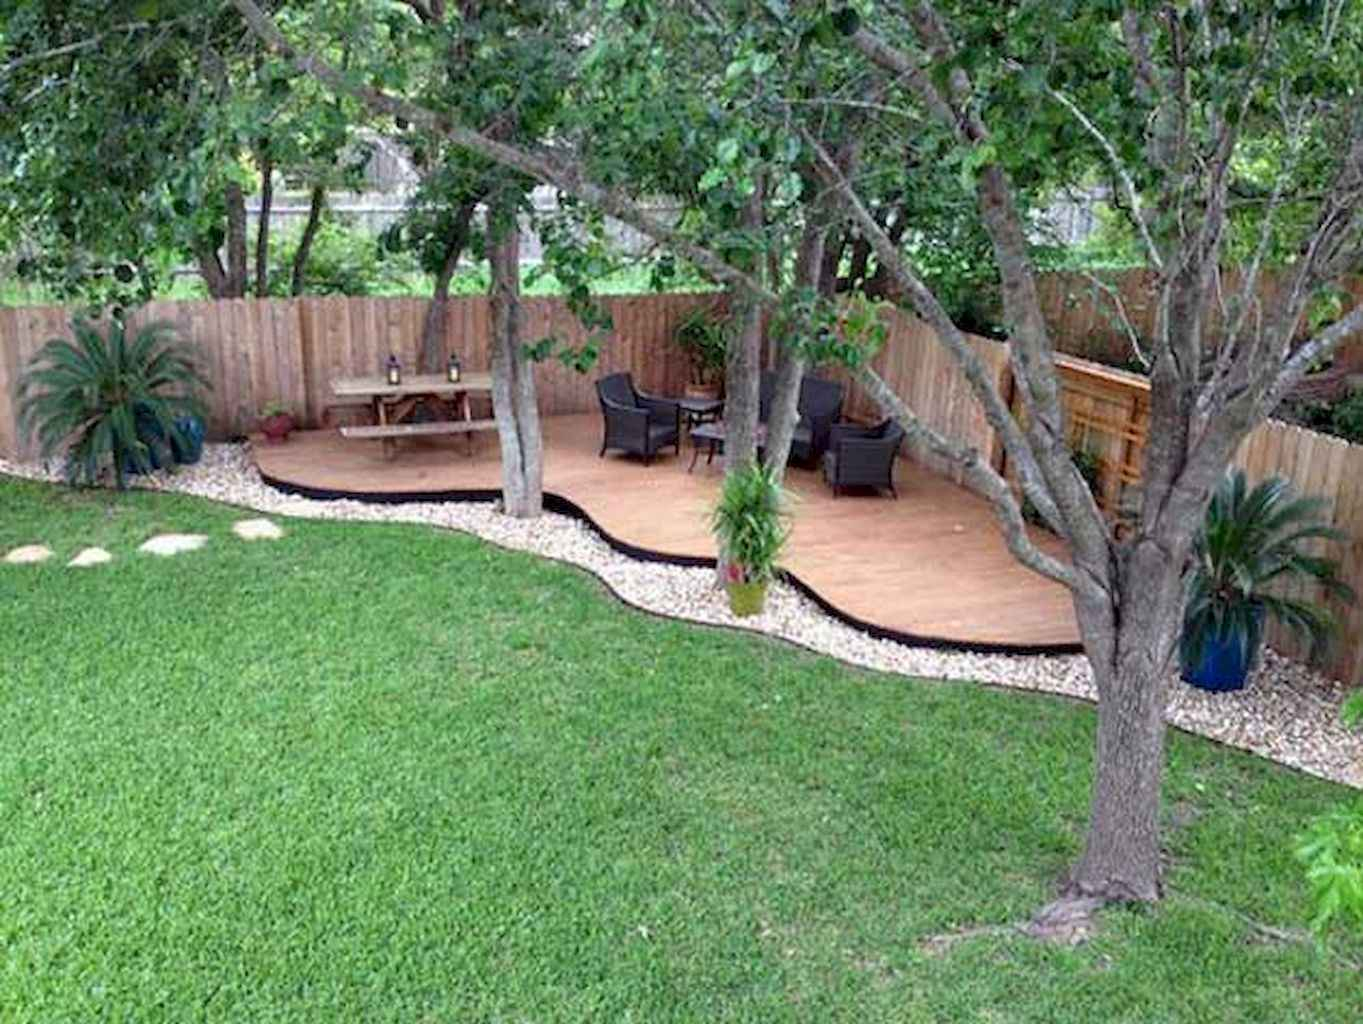 60 Fresh Backyard Landscaping Design Ideas On A Budget with 14 Smart Tricks of How to Make Design For Backyard Landscaping